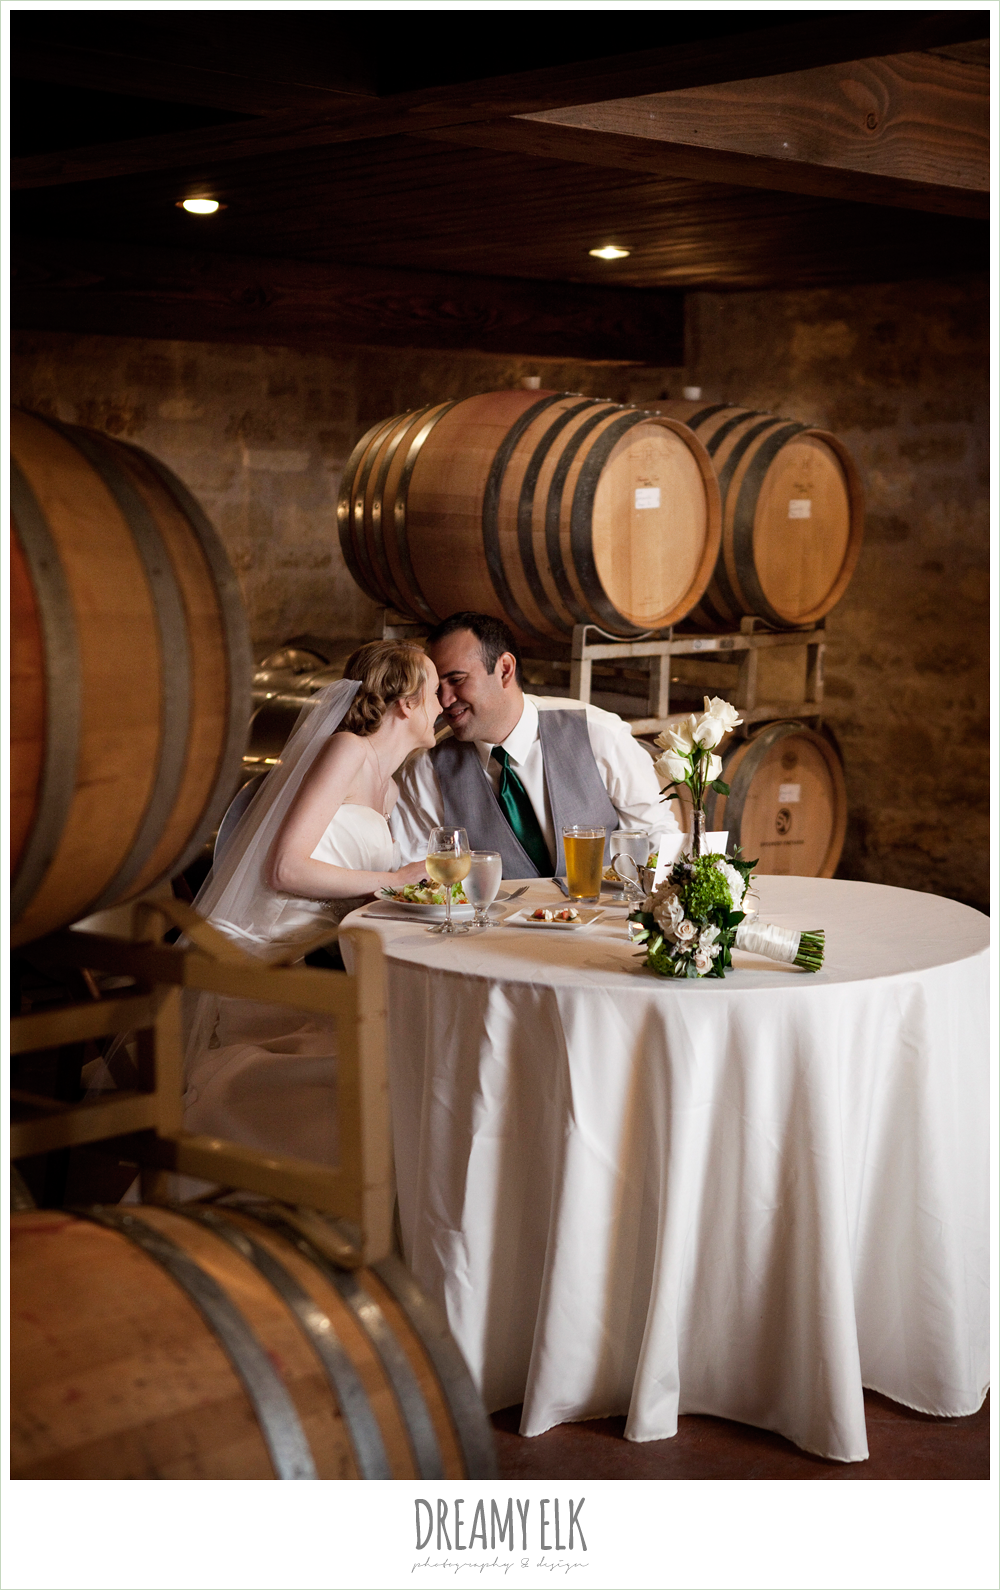 vineyard barrel room, bride and groom, winter vineyard wedding, dreamy elk photography and design